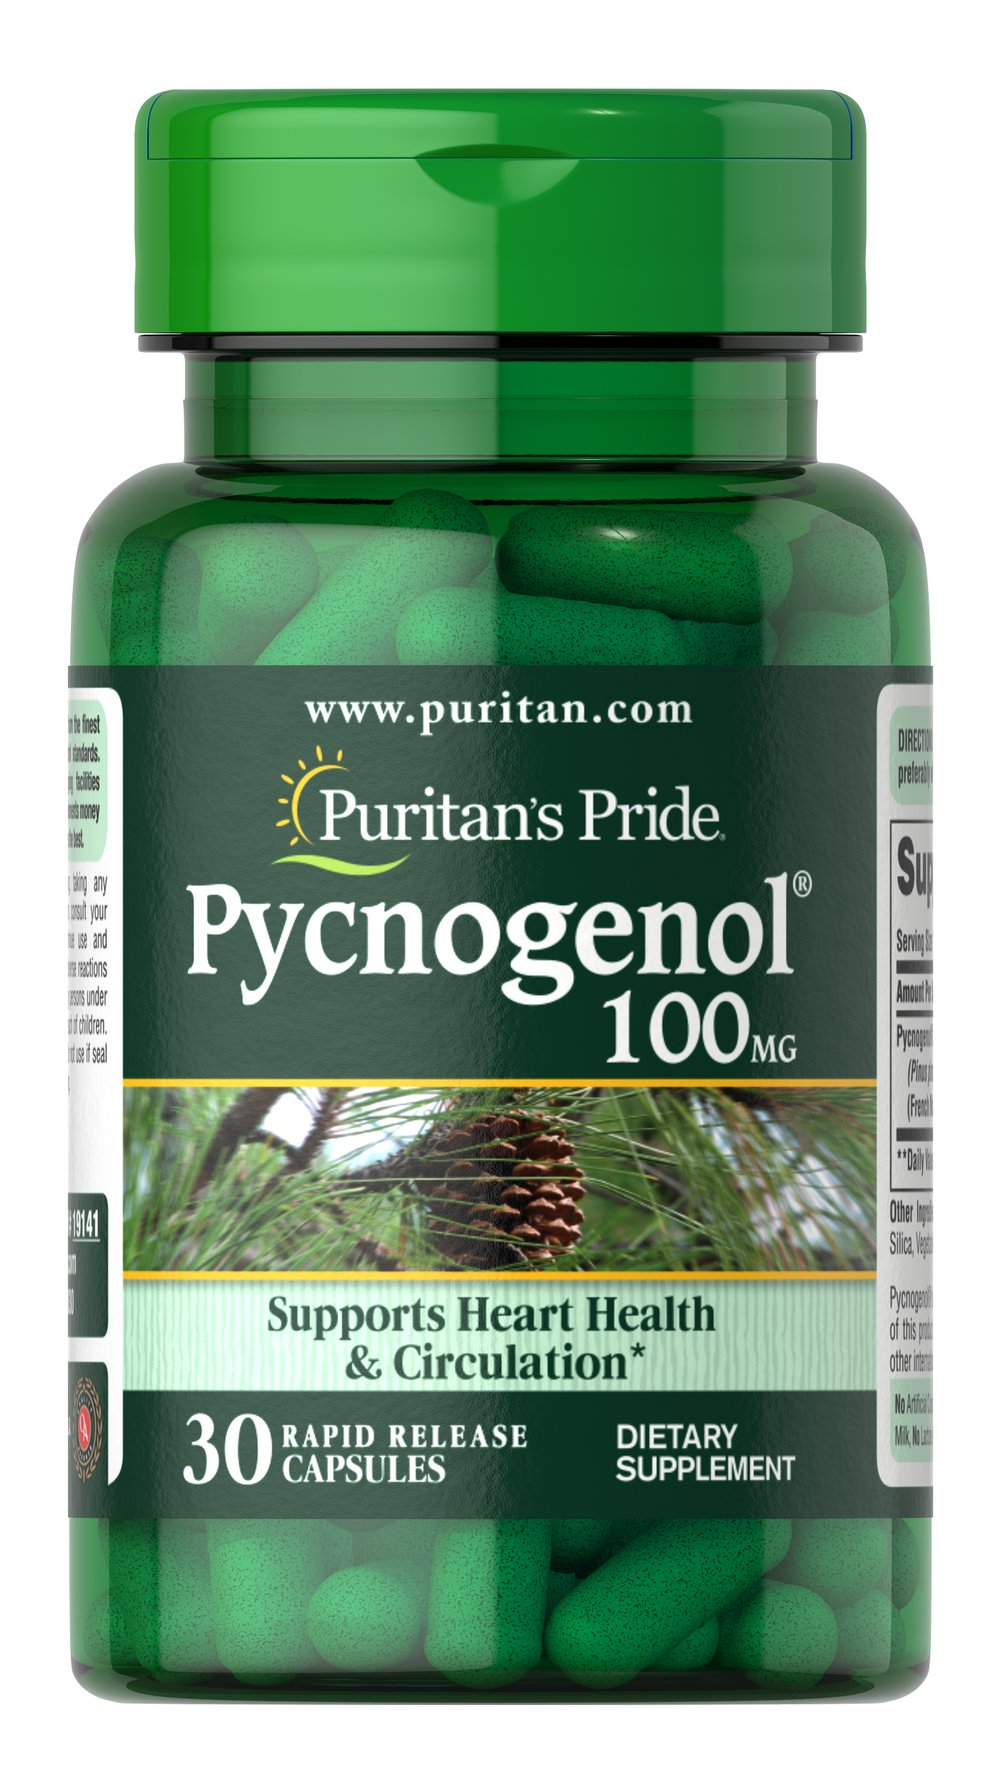 Pycnogenol® 100 mg <p>Provides powerful antioxidant support**</p><p>Supports healthy circulation and contributes to heart function**</p><p>May help with the occasional discomforts of PMS**</p><p>Aids with maintaining healthy skin**</p><p>Assists with eye health**</p><p>Helps maintain glucose levels already within a normal range**</p>  30 Capsules 100 mg $59.99